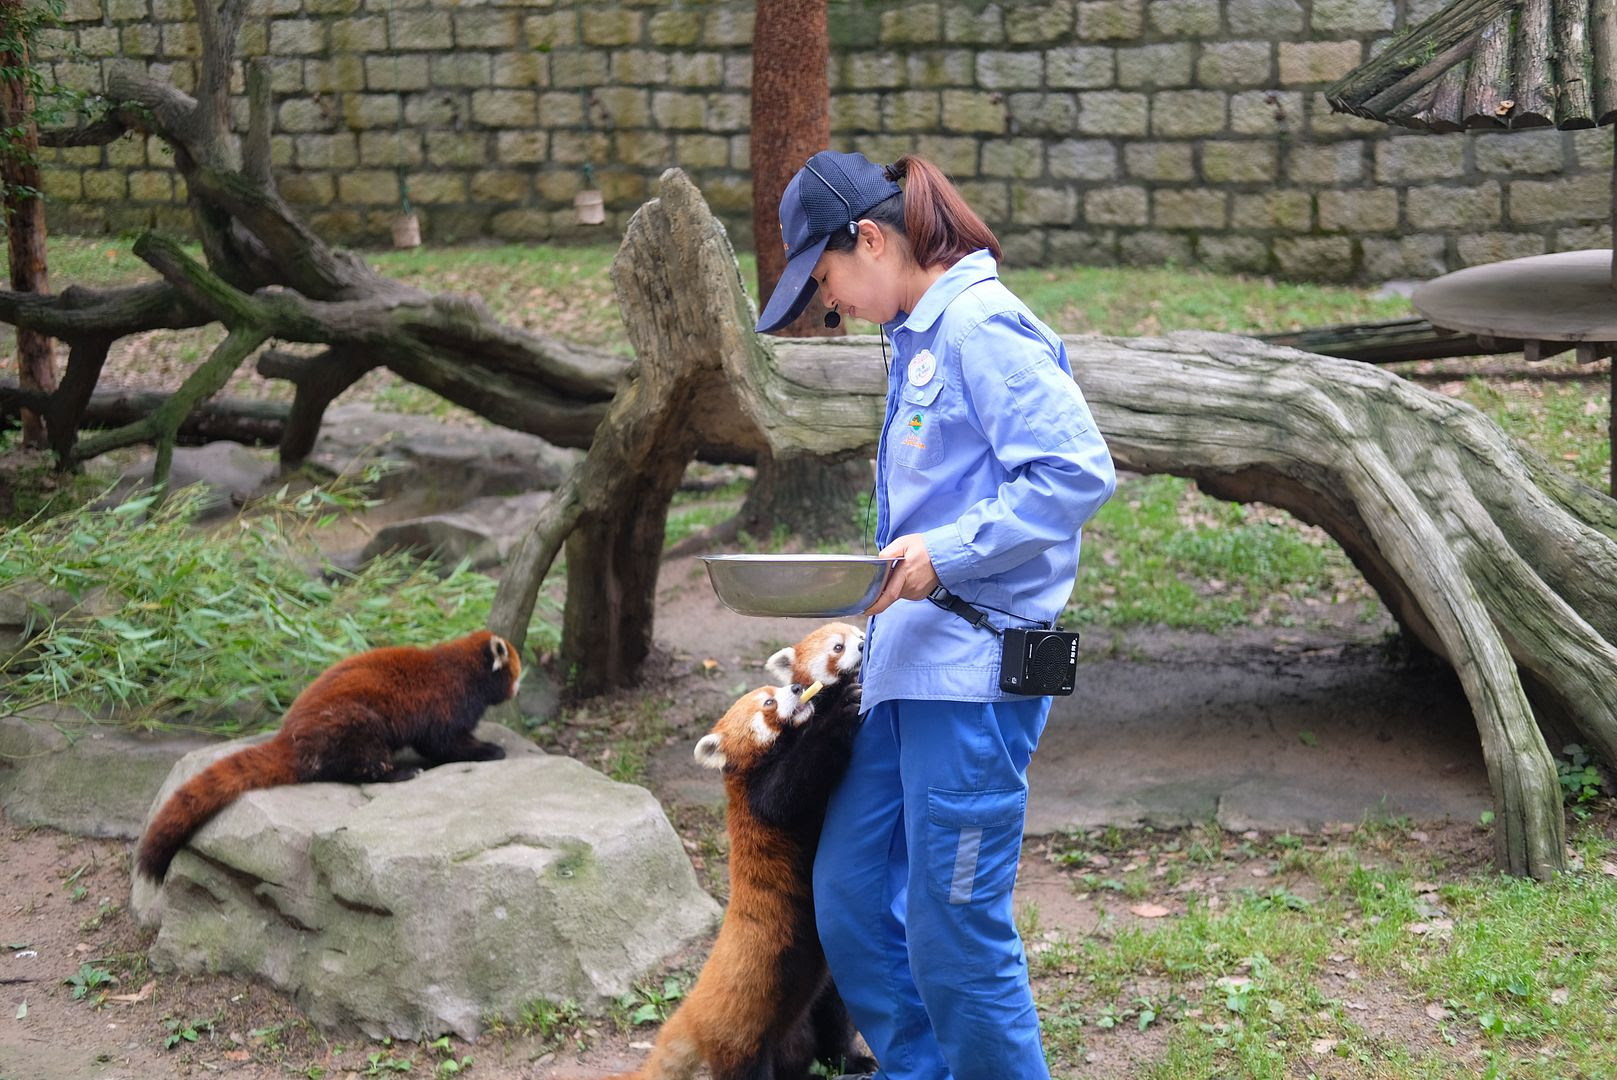 photo shanghai wildlife animal park red panda.jpg